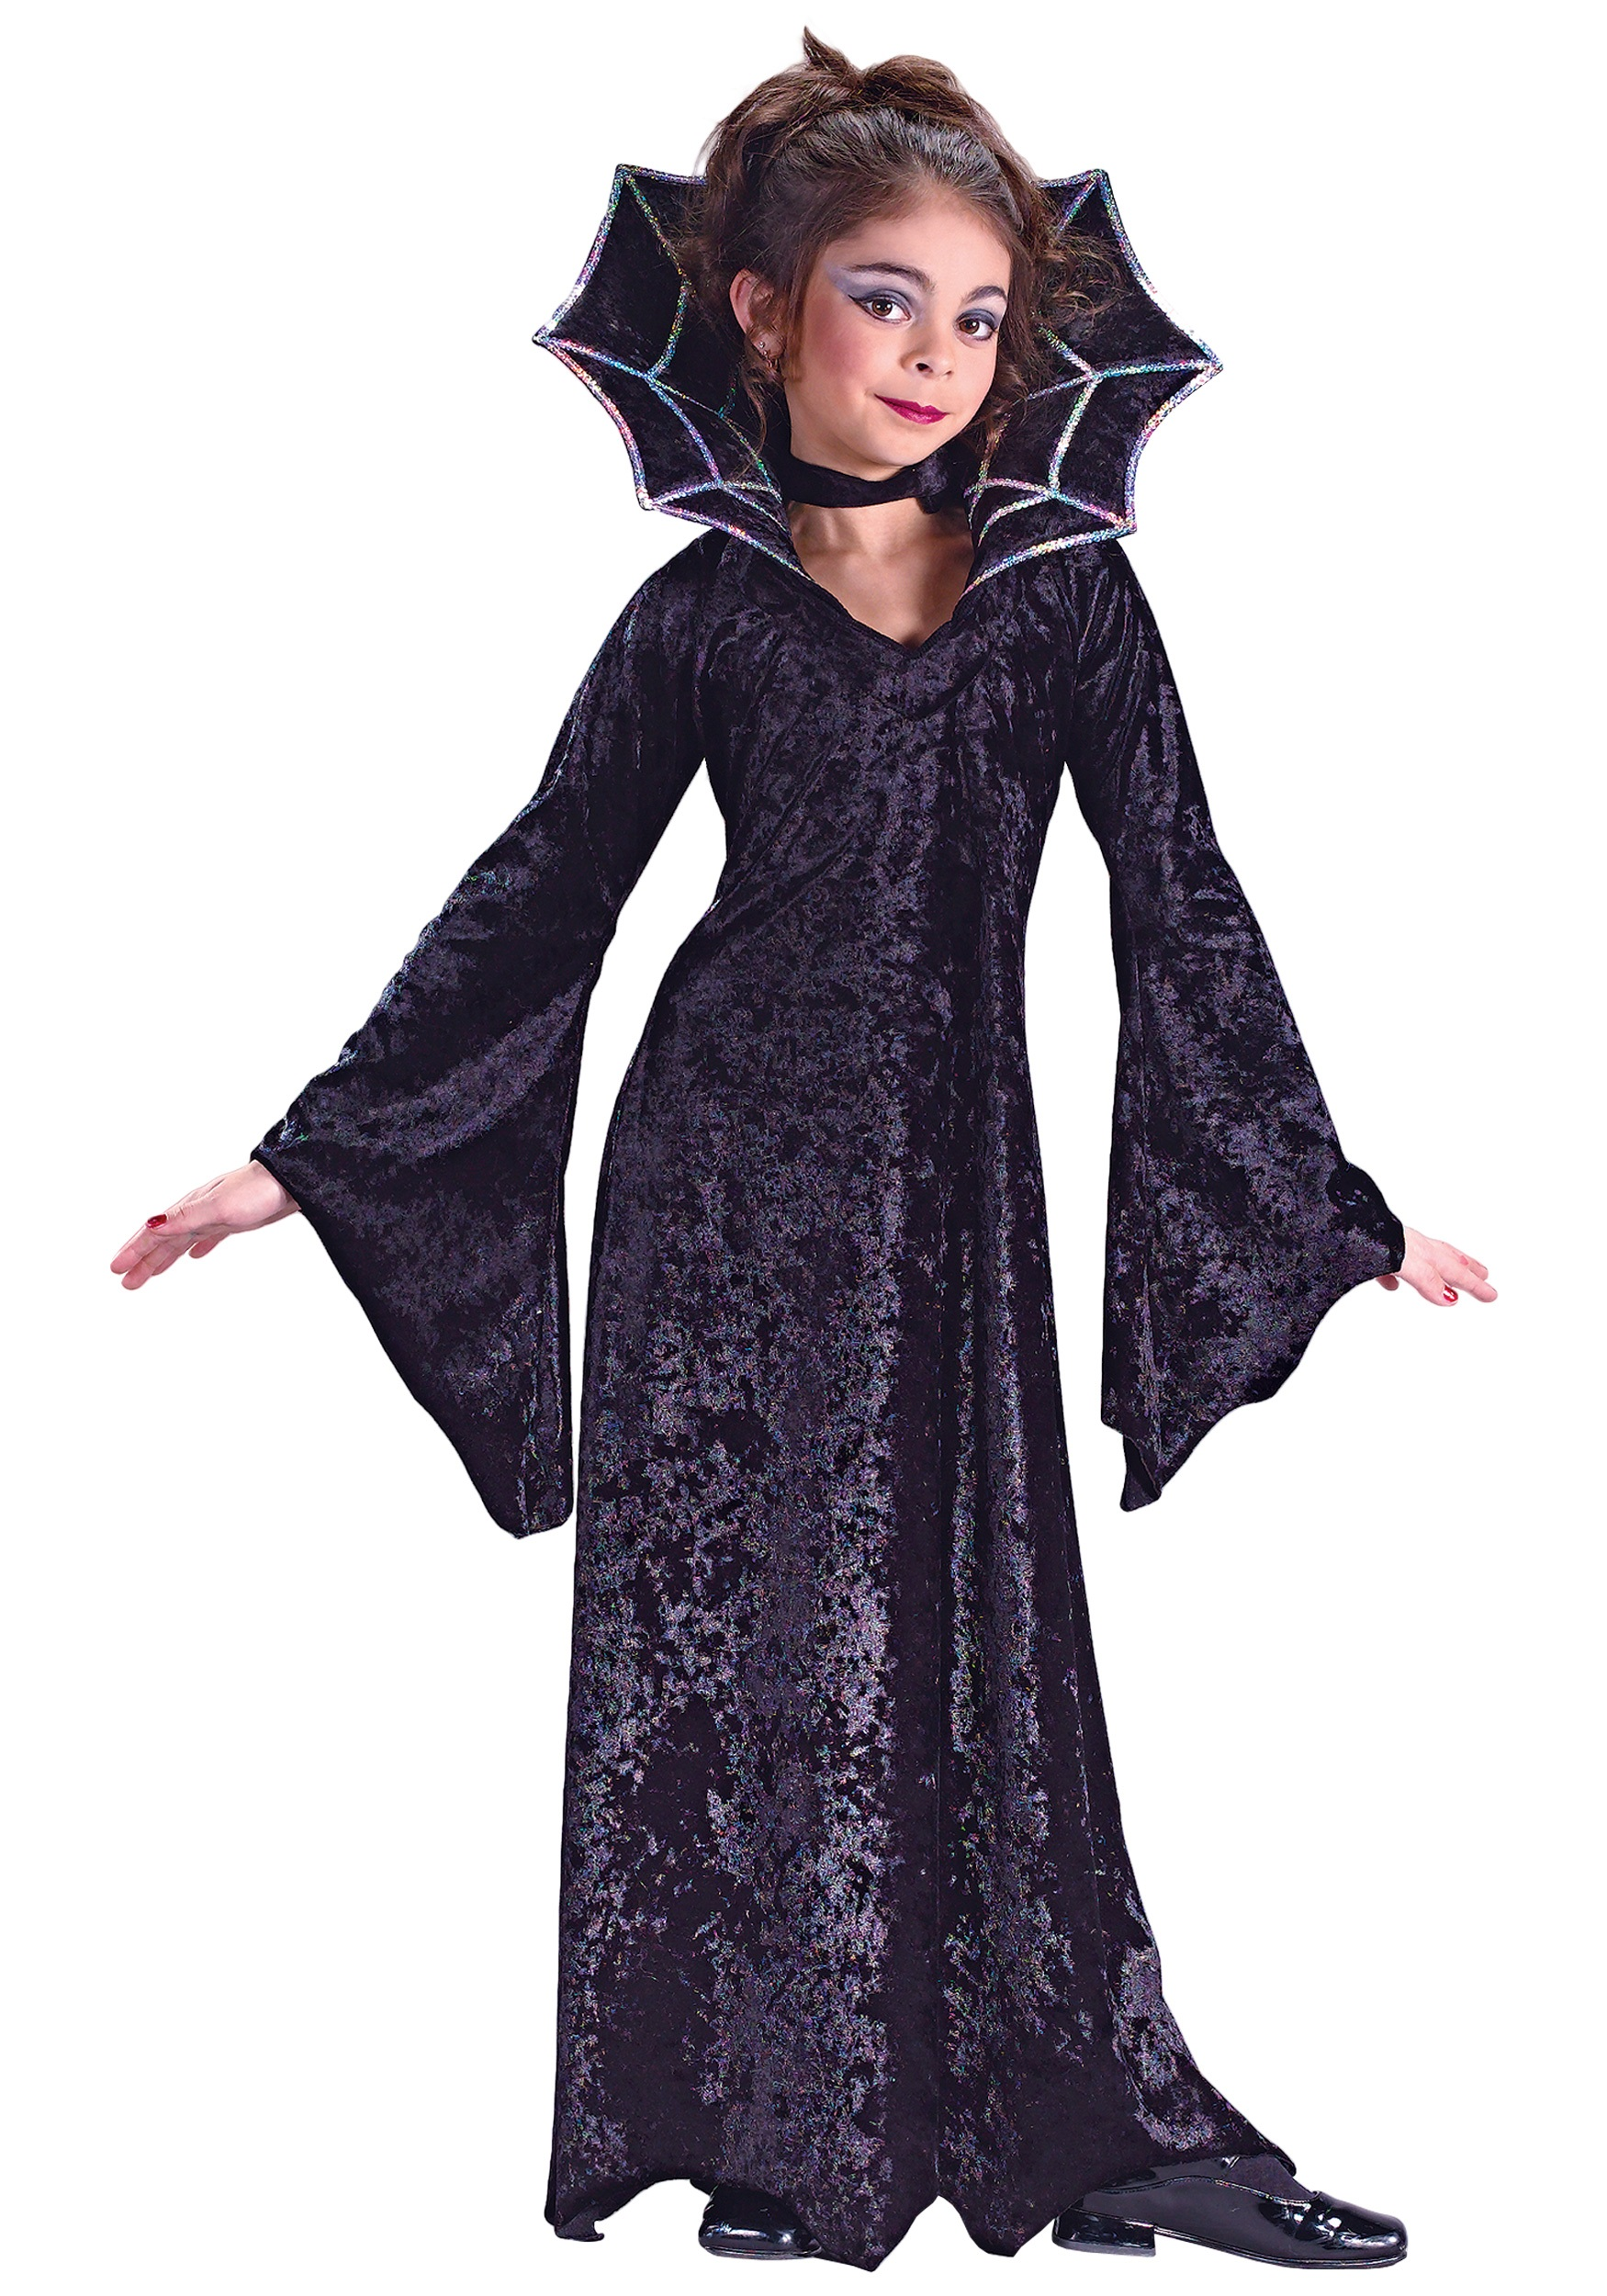 Girls' Vampire Costumes - Girls Vampire Halloween Costume